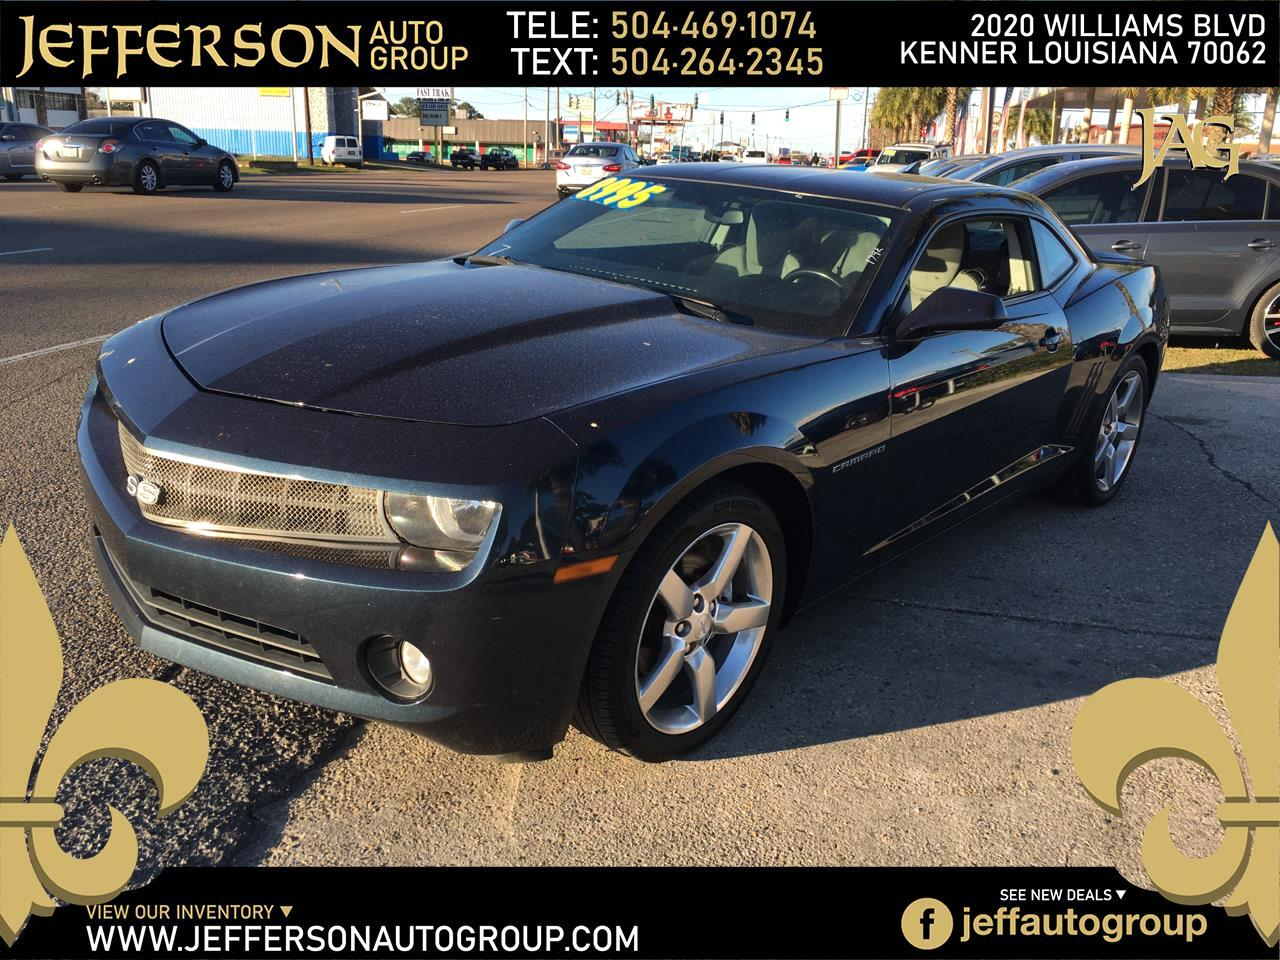 Chevrolet Camaro 1LT Coupe 2013